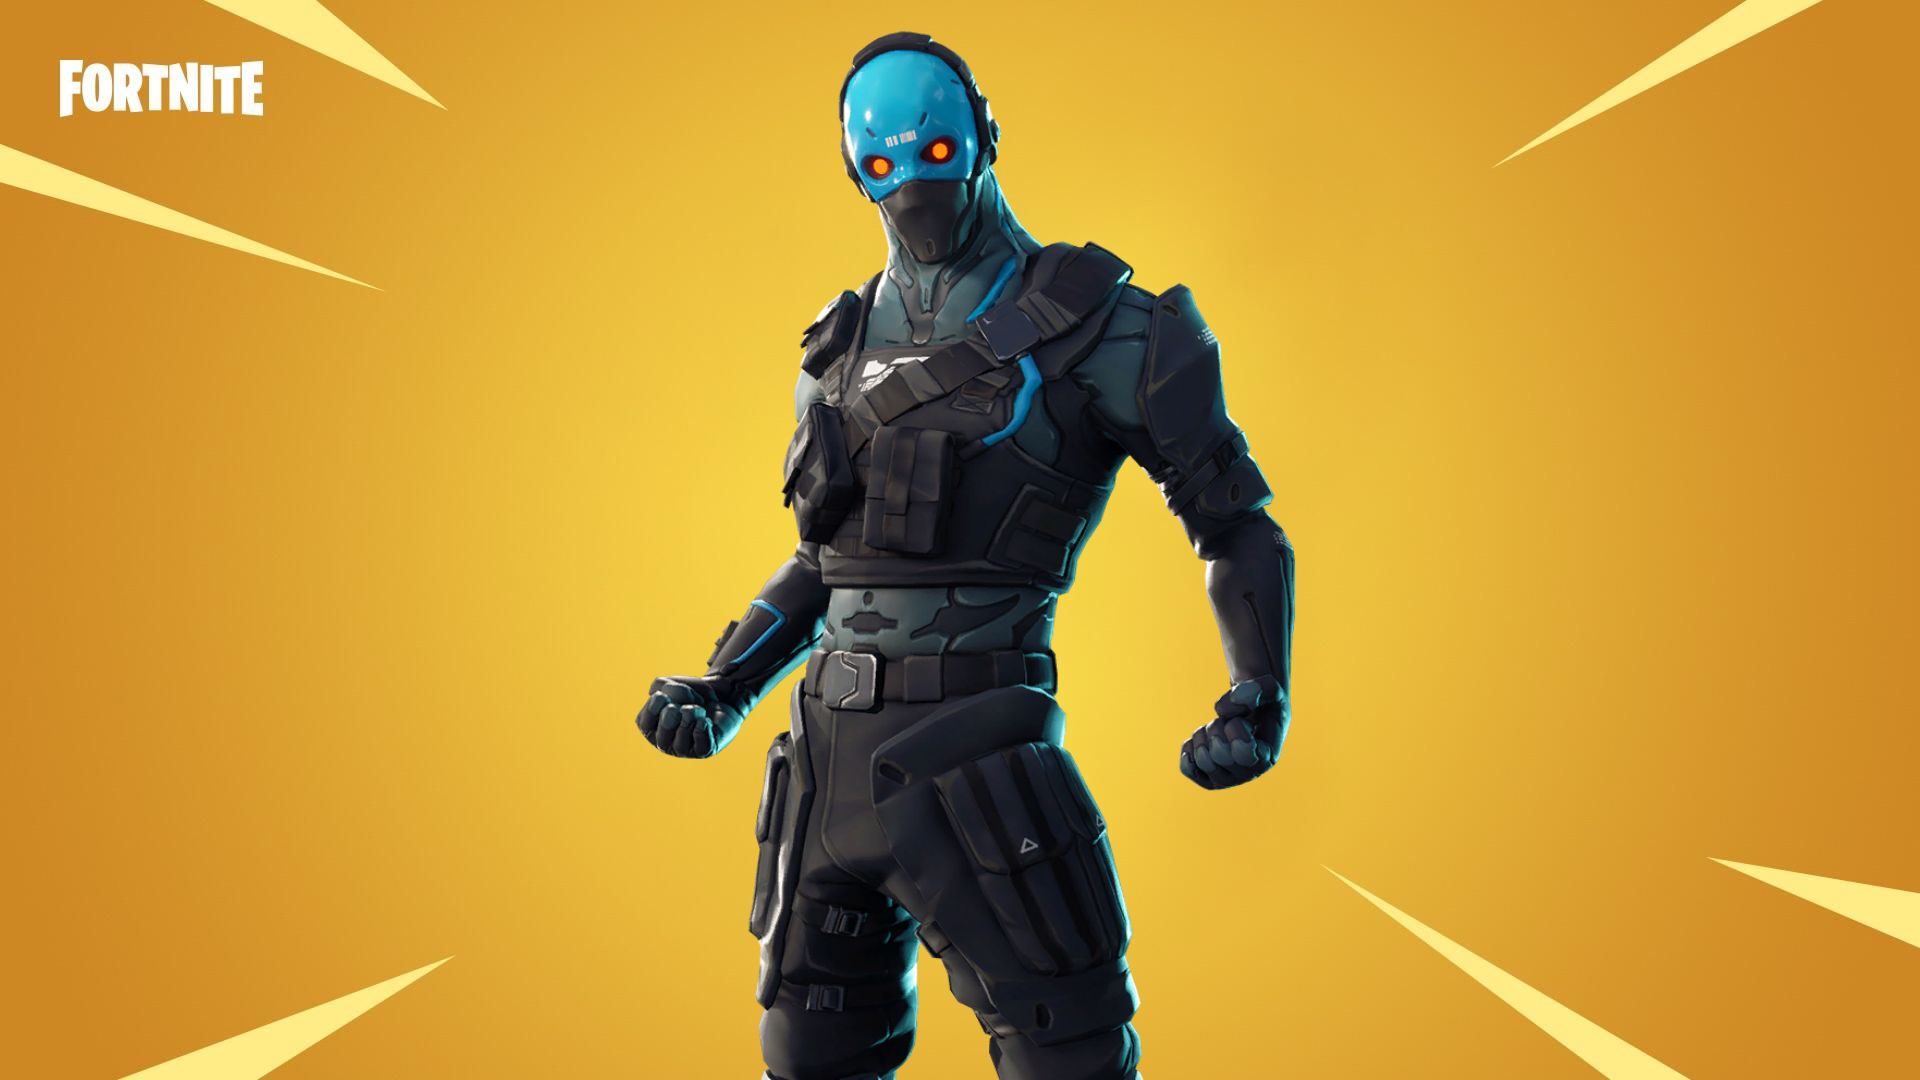 a cobalt starter pack could be coming to fortnite soon - fortnite rogue agent starter pack release date